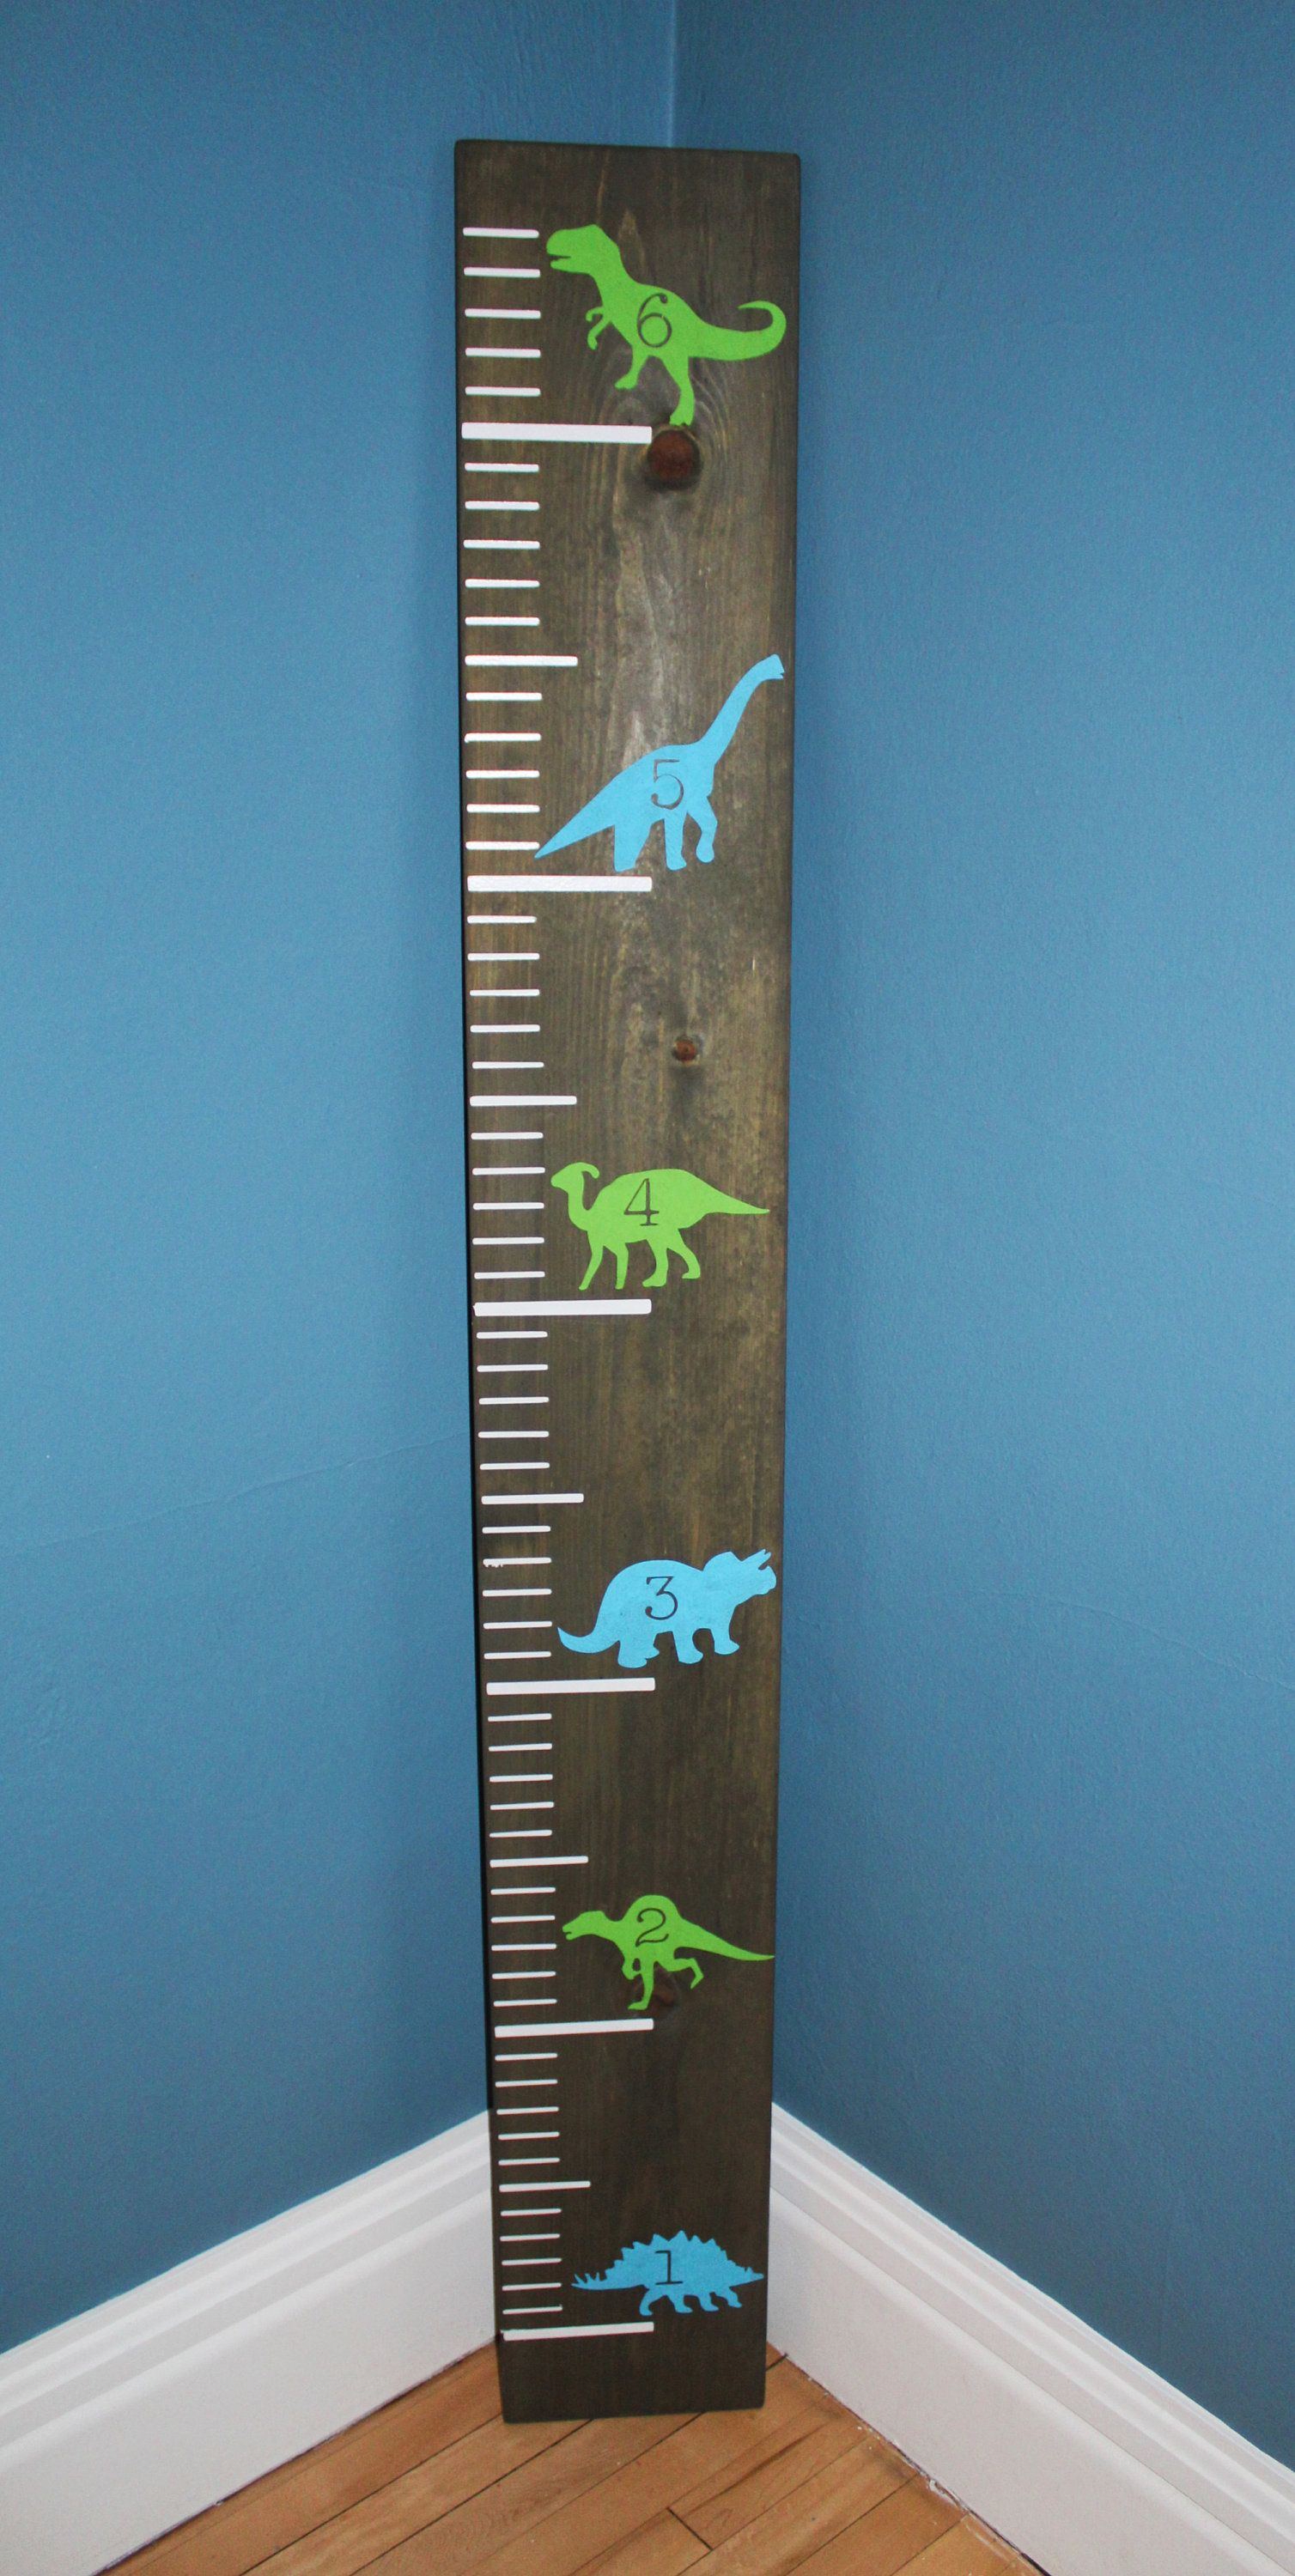 Wooden Dinosaur Growth Chart for Measuring Children|Height Board|Ruler|Kid's Room|Baby shower gift|Gift for Christmas Birthday|Nursery Decor